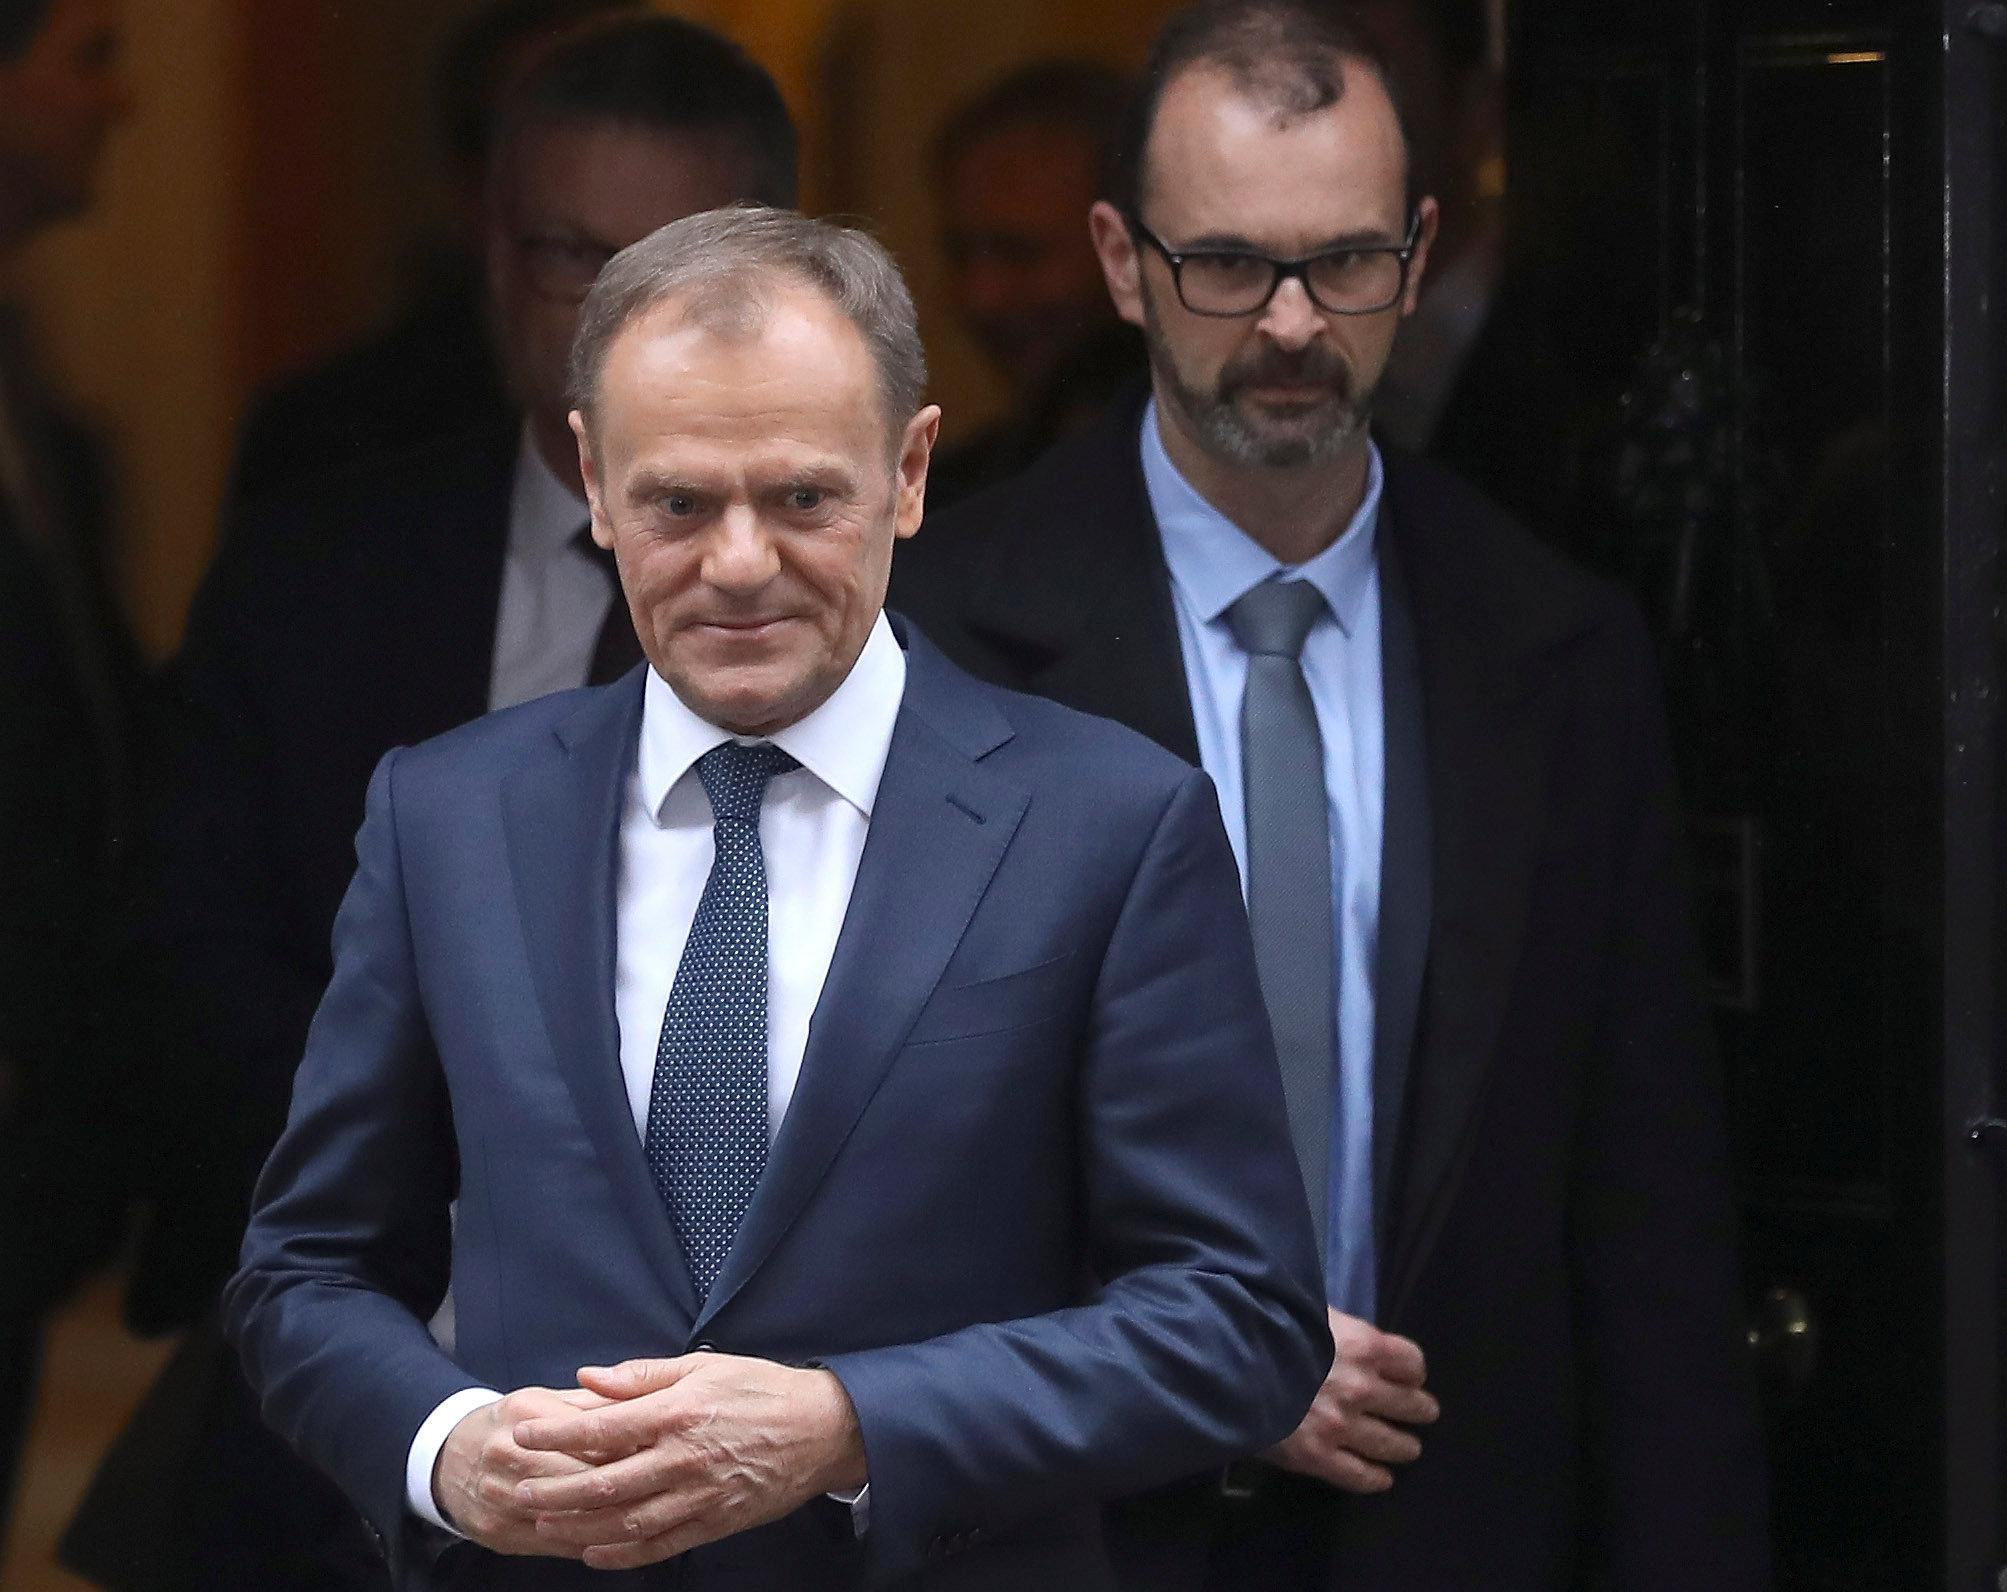 Trade with Britain after Brexit won't be easier - EU's Tusk